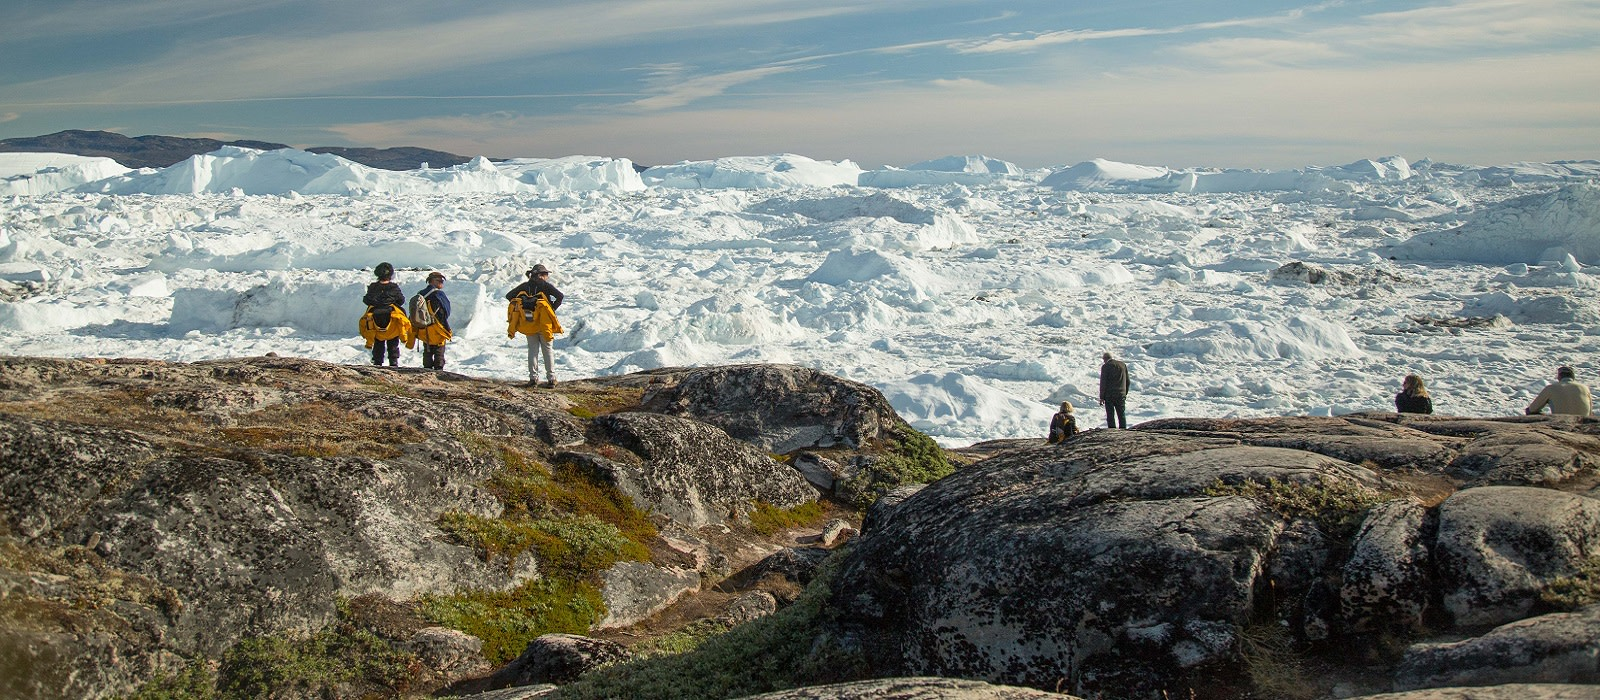 Essential Greenland: Southern Coasts and Disko Bay Tour Trip 1